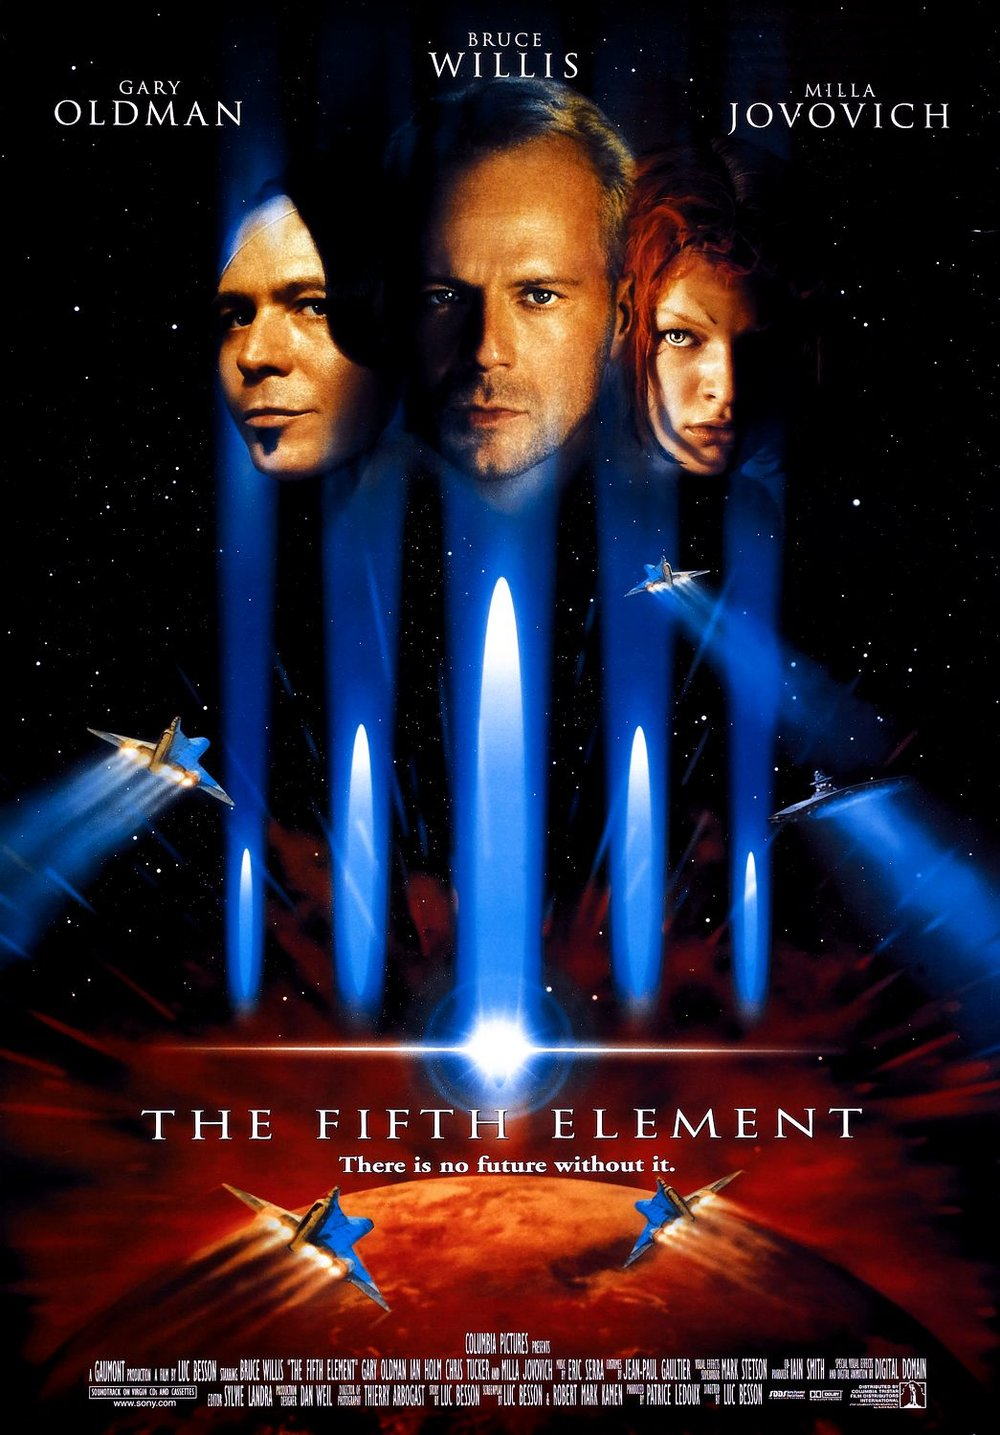 The Fifth Element (1997)WATCHED - Best guess: Bruce Willis drives around in space.